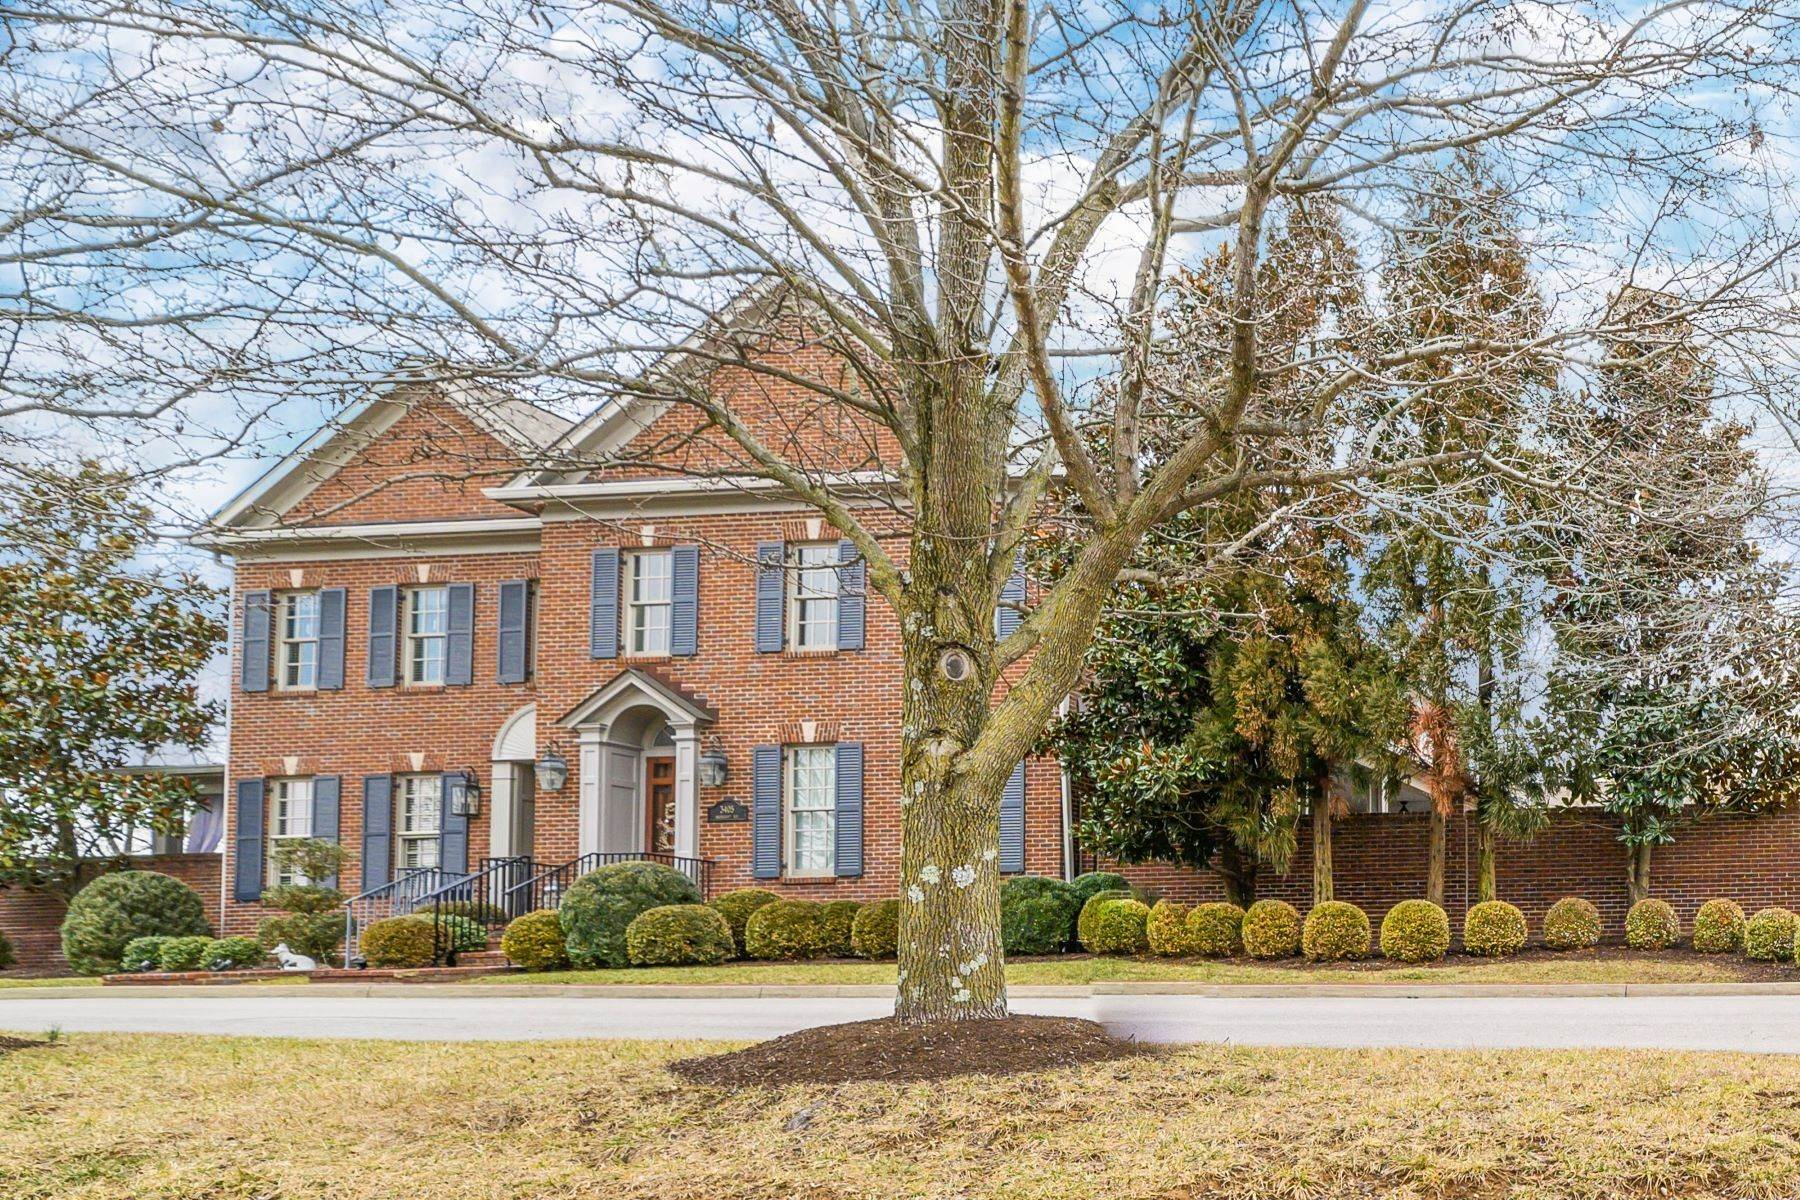 townhouses for Sale at 3405 Briercroft Way Lexington, Kentucky 40509 United States